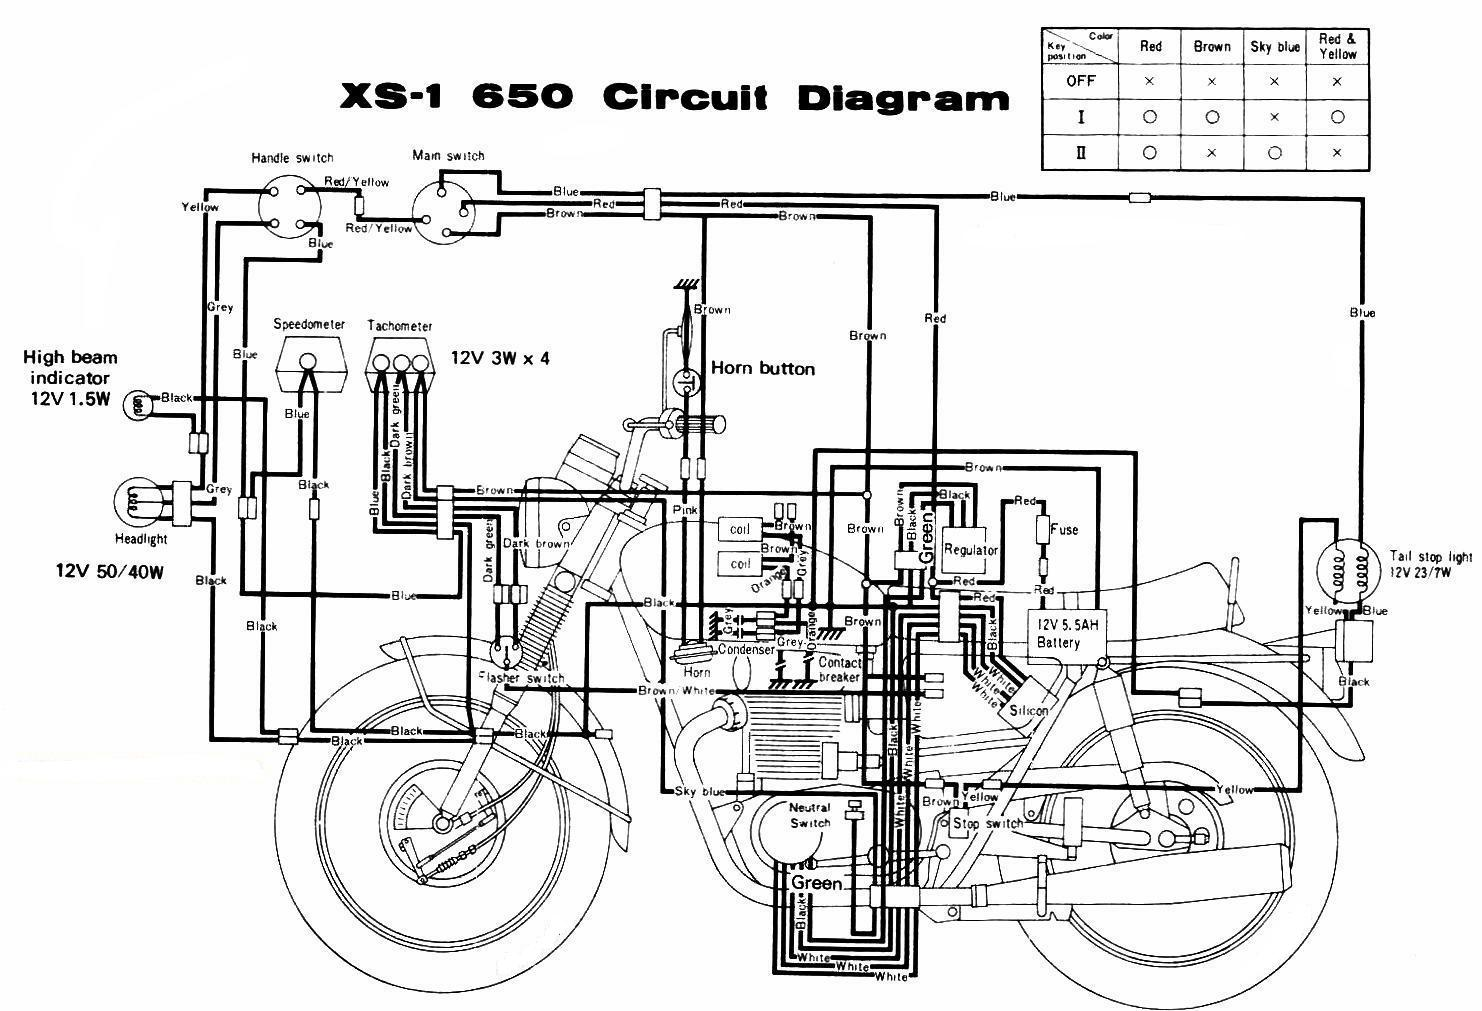 wiring diagrams rh oregonmotorcycleparts com 1979 Yamaha 175 It Wiring 1983 Yamaha Enduro Wiring